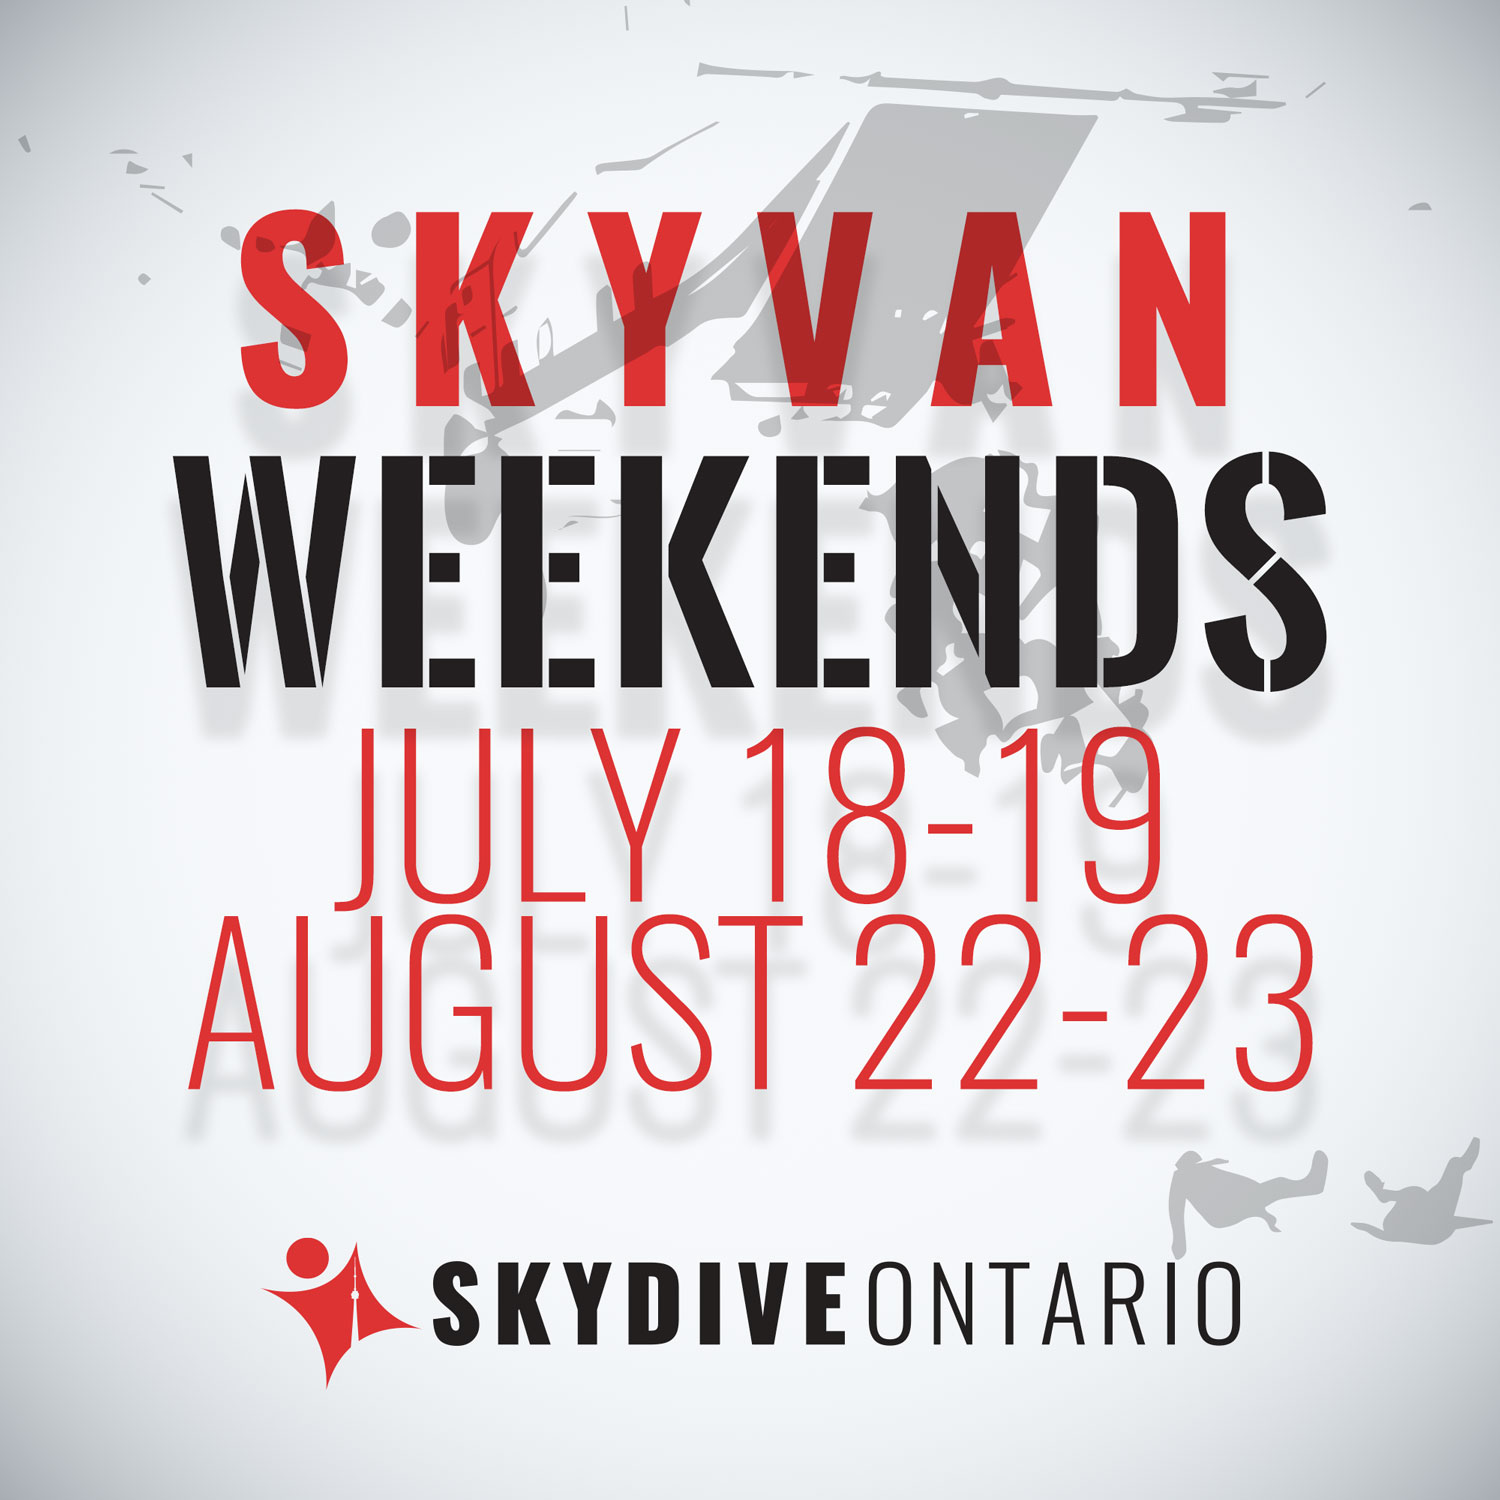 Skydive Ontario Skyvan Weekend 2020